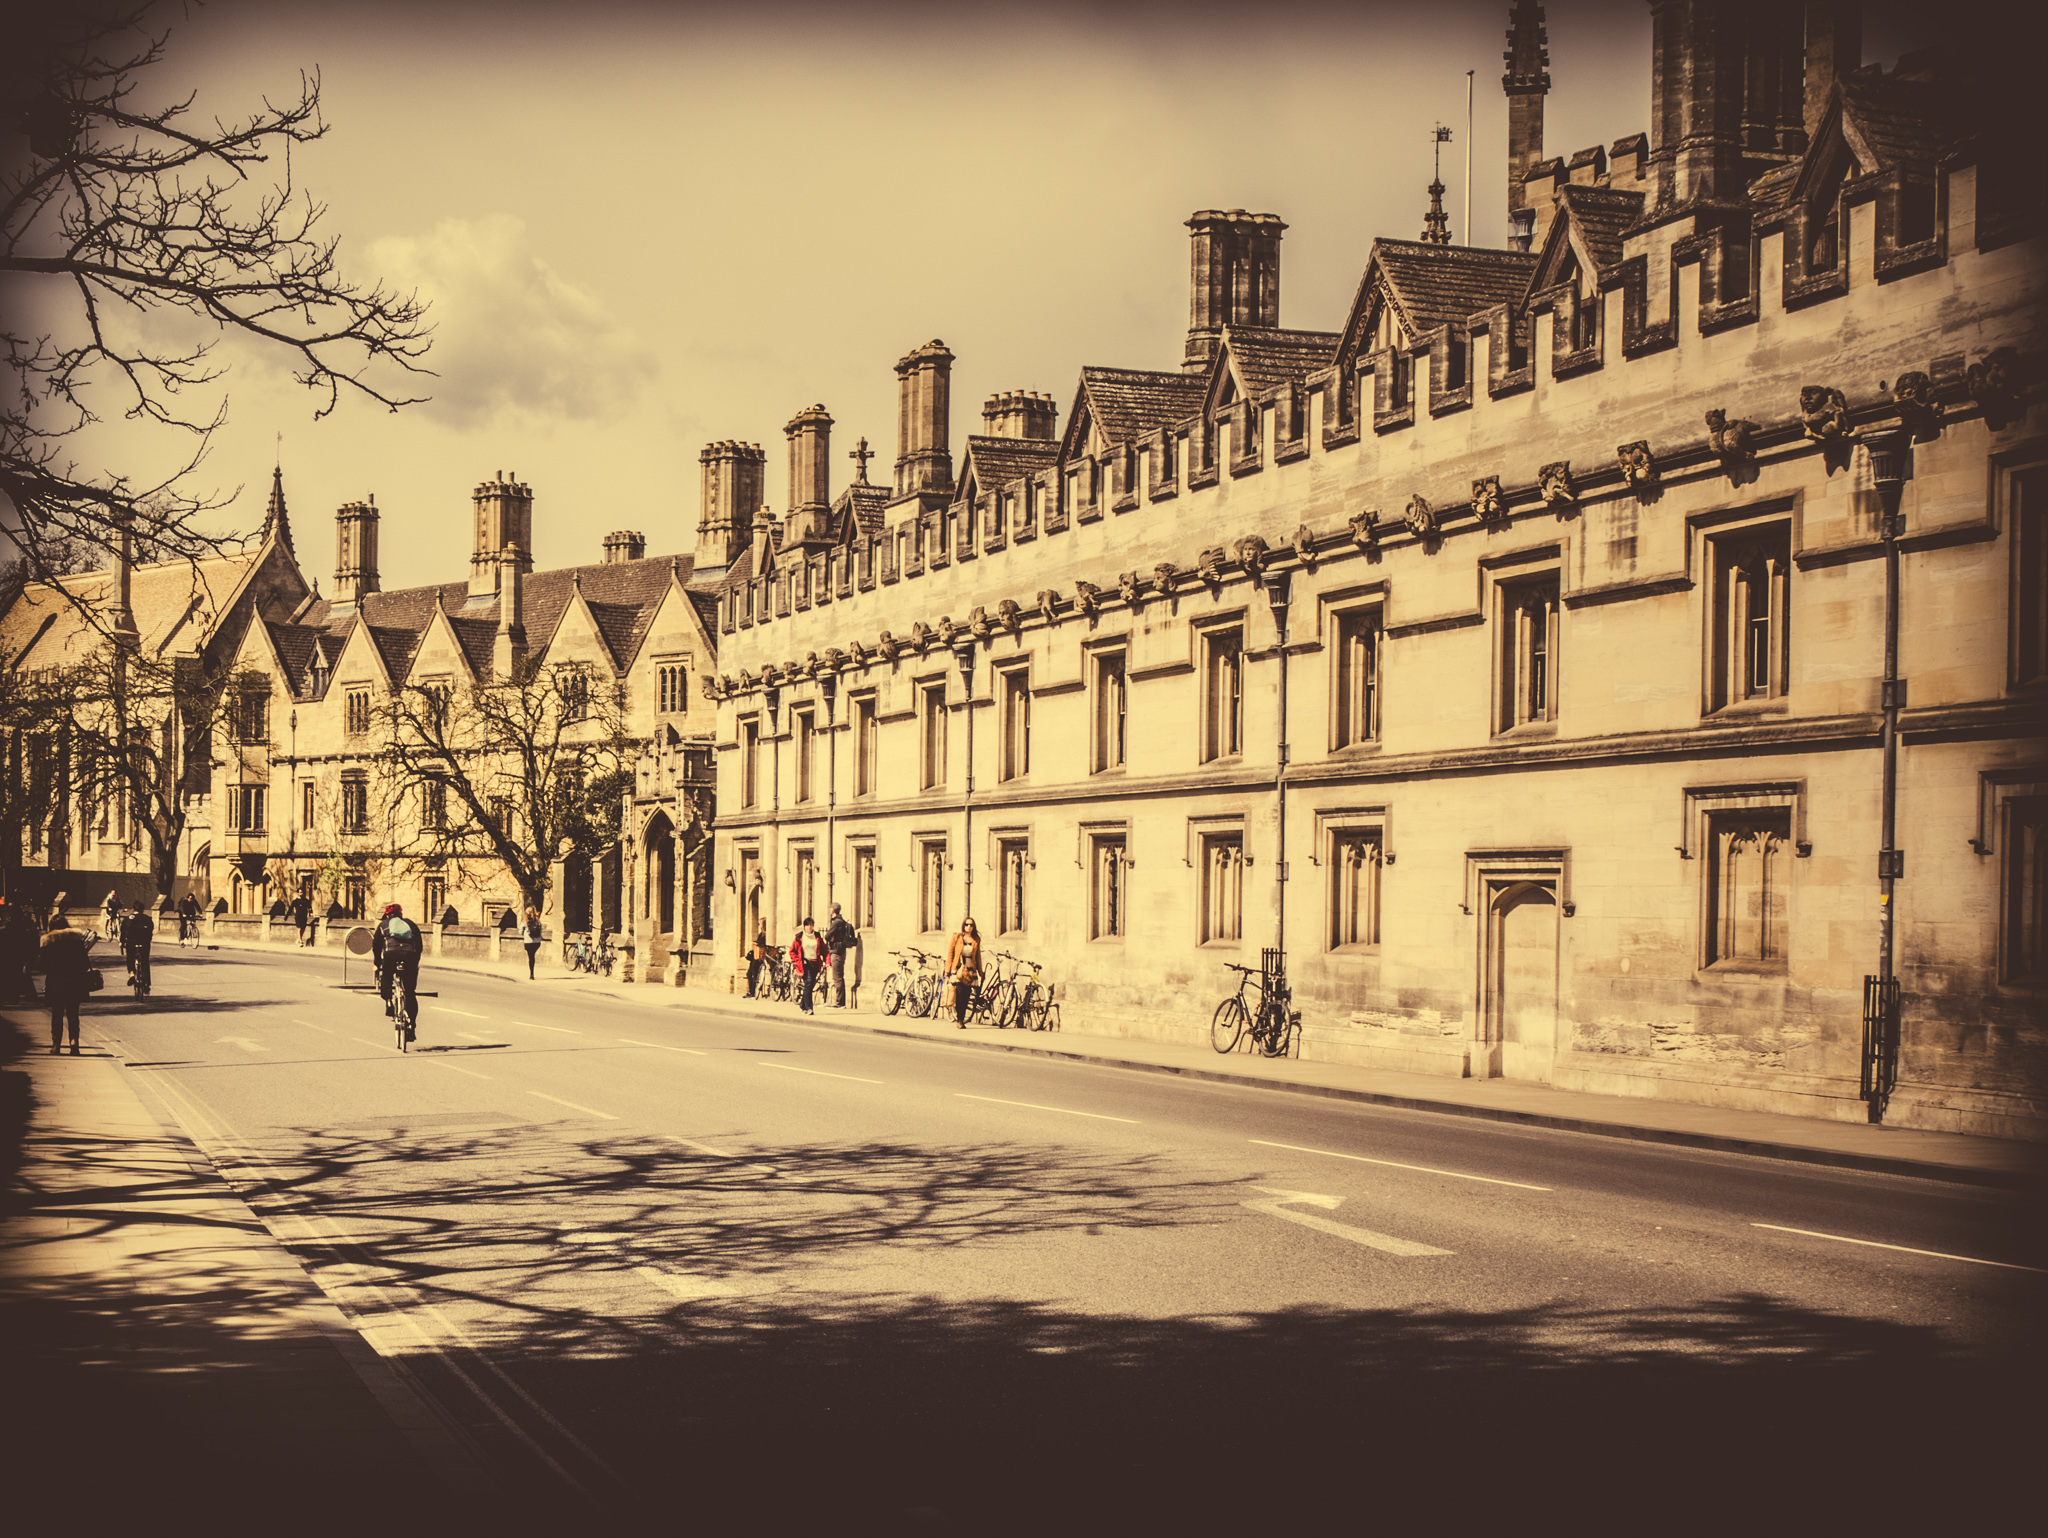 3 Days in Oxford – Day 3. The story of the photographs